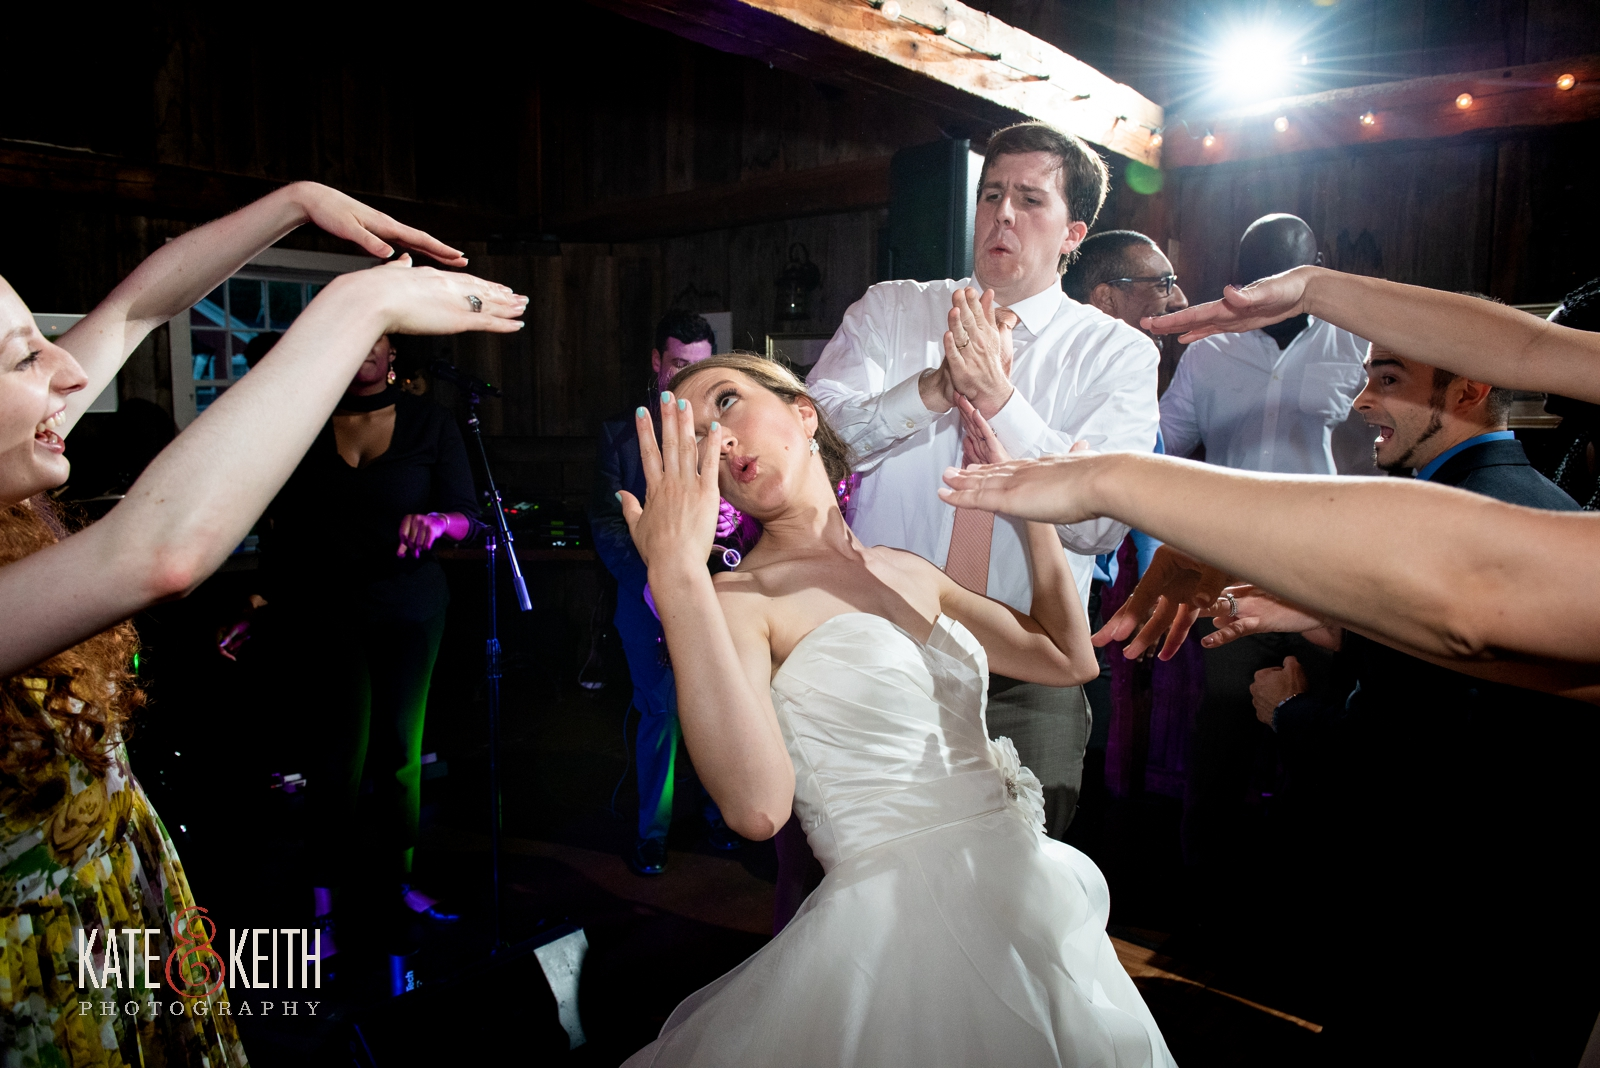 great wedding band and dancing photos of bride and groom, Grafton Vermont